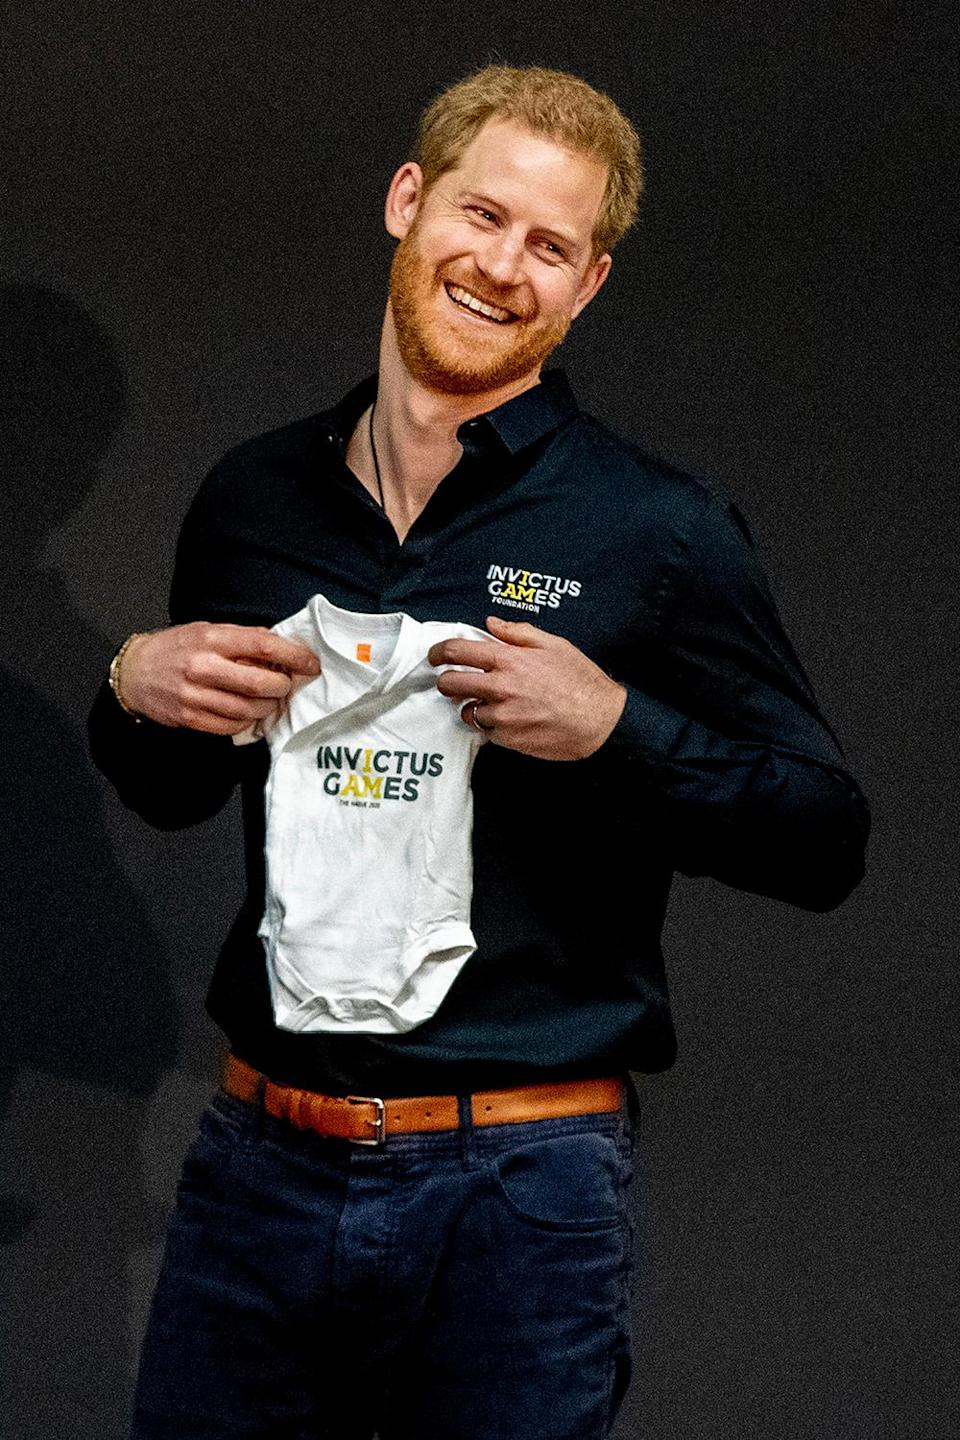 """<p>Think the tiny Invictus Games onesie is adorable? <a href=""""https://people.com/royals/prince-harry-daddy-jacket-netherlands-trip/"""" rel=""""nofollow noopener"""" target=""""_blank"""" data-ylk=""""slk:You haven't seen his custom &quot;Daddy&quot; jacket yet"""" class=""""link rapid-noclick-resp"""">You haven't seen his custom """"Daddy"""" jacket yet</a>.</p>"""